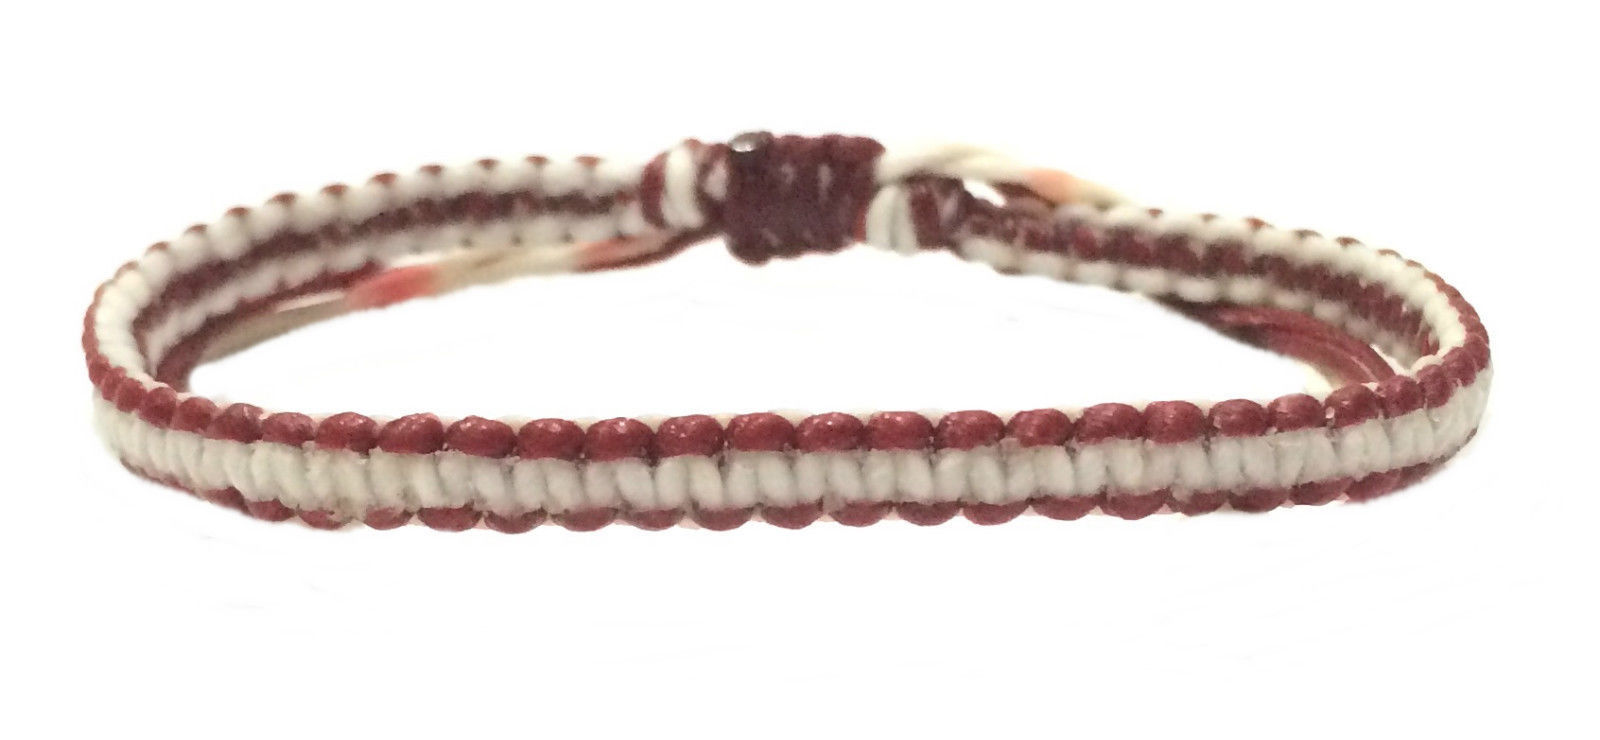 Red White Cord Weave Mens Cotton Adjustble Wristband Handcrafted Bracelet